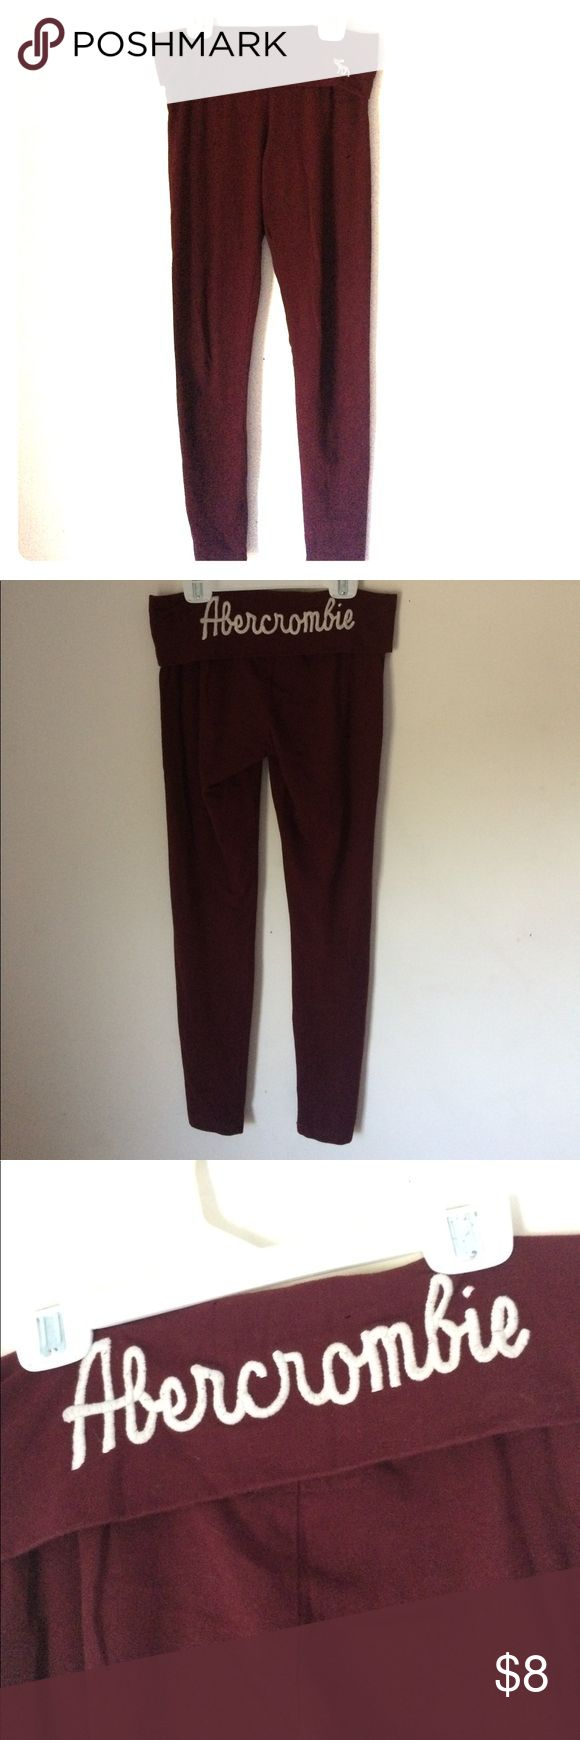 Abercrombie and Fitch skinny fitted leggings Nwot Small Maroon Abercrombie and Fitch leggings. They fold over at the top and are super soft! Abercrombie & Fitch Pants Leggings